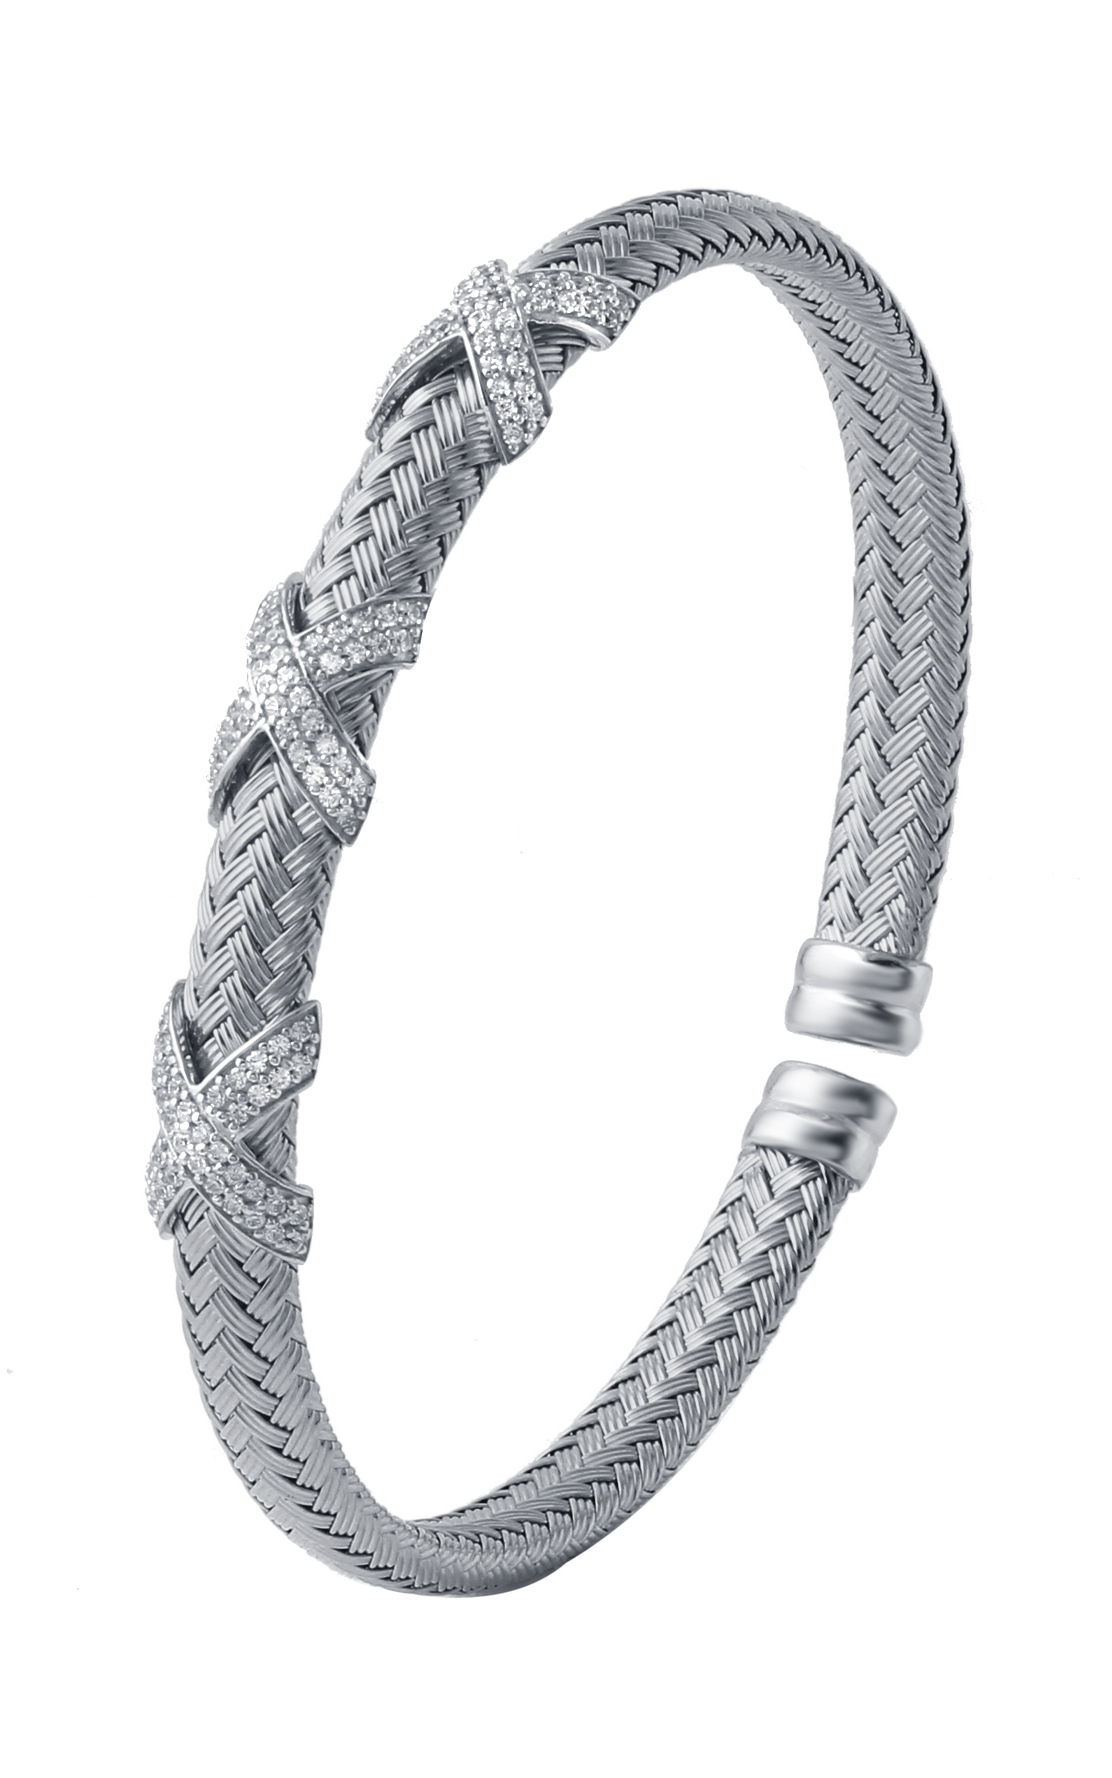 Charles Garnier Bracelets Bracelet Paolo Collection MLC8061WZ product image